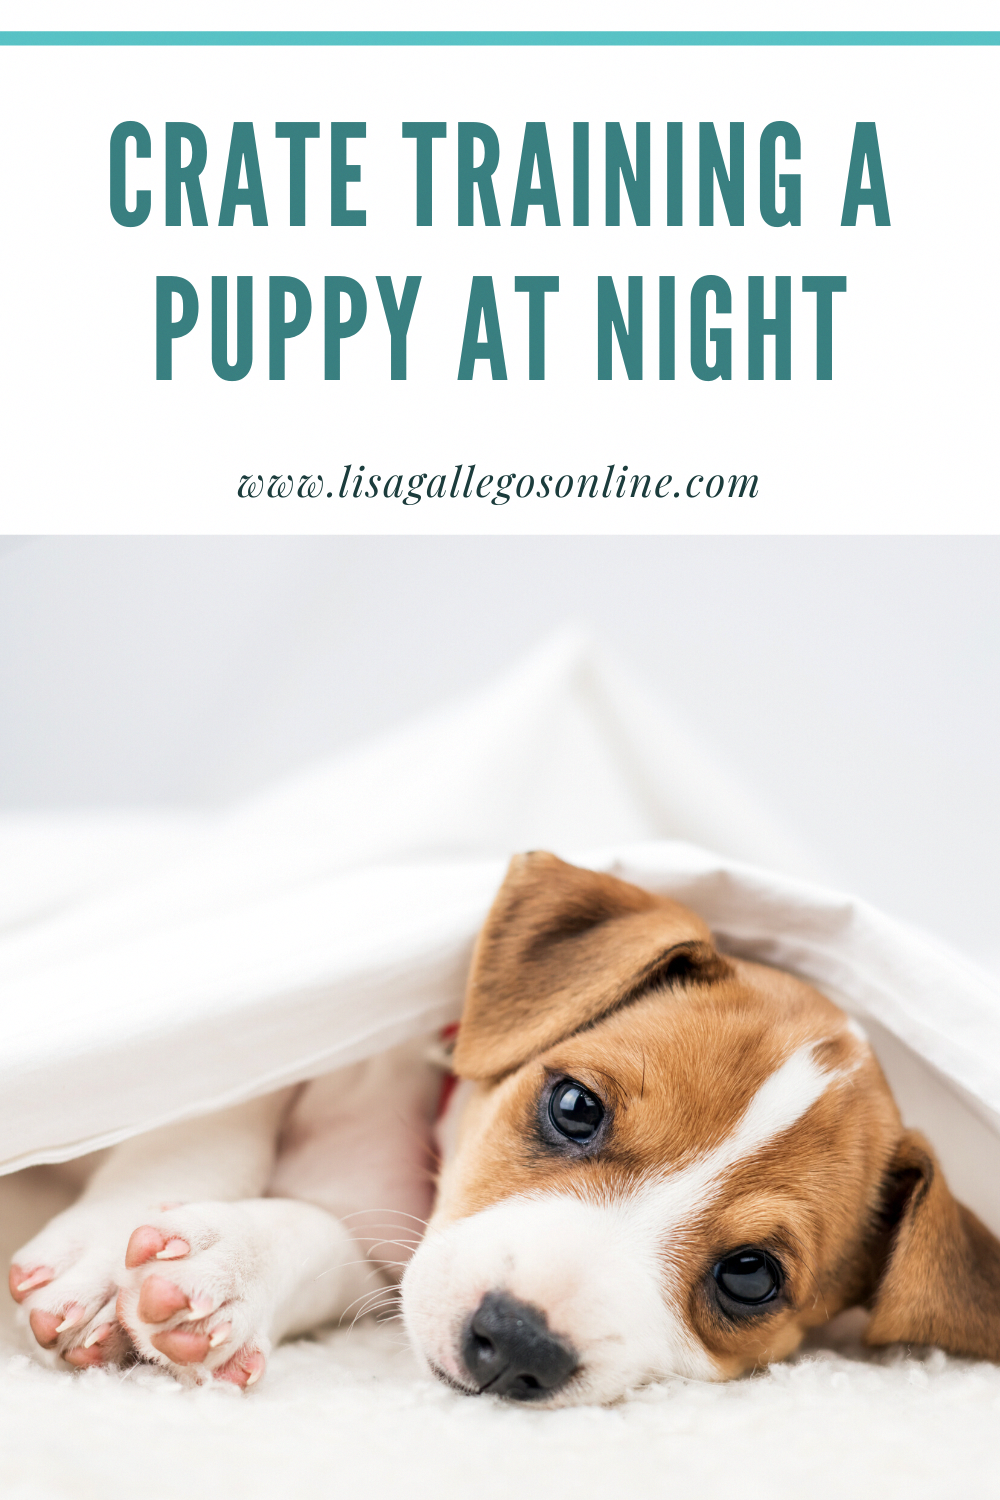 Crate Training A Puppy At Night In 2020 Crate Training Puppy Puppy Training Crate Training